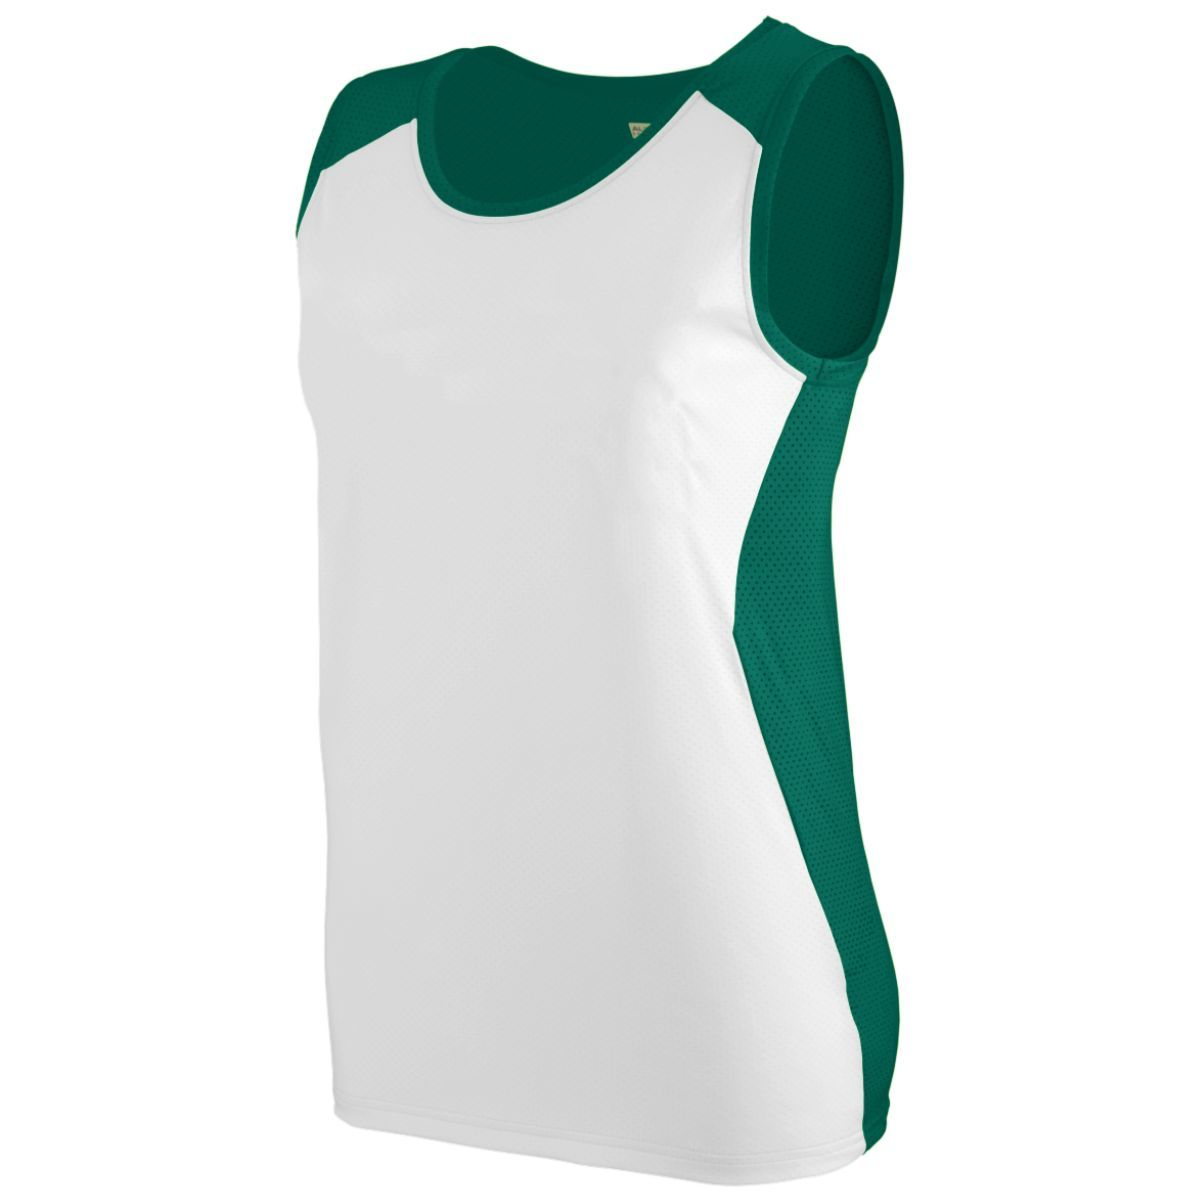 Ladies Alize Jersey - DARK GREEN/WHITE